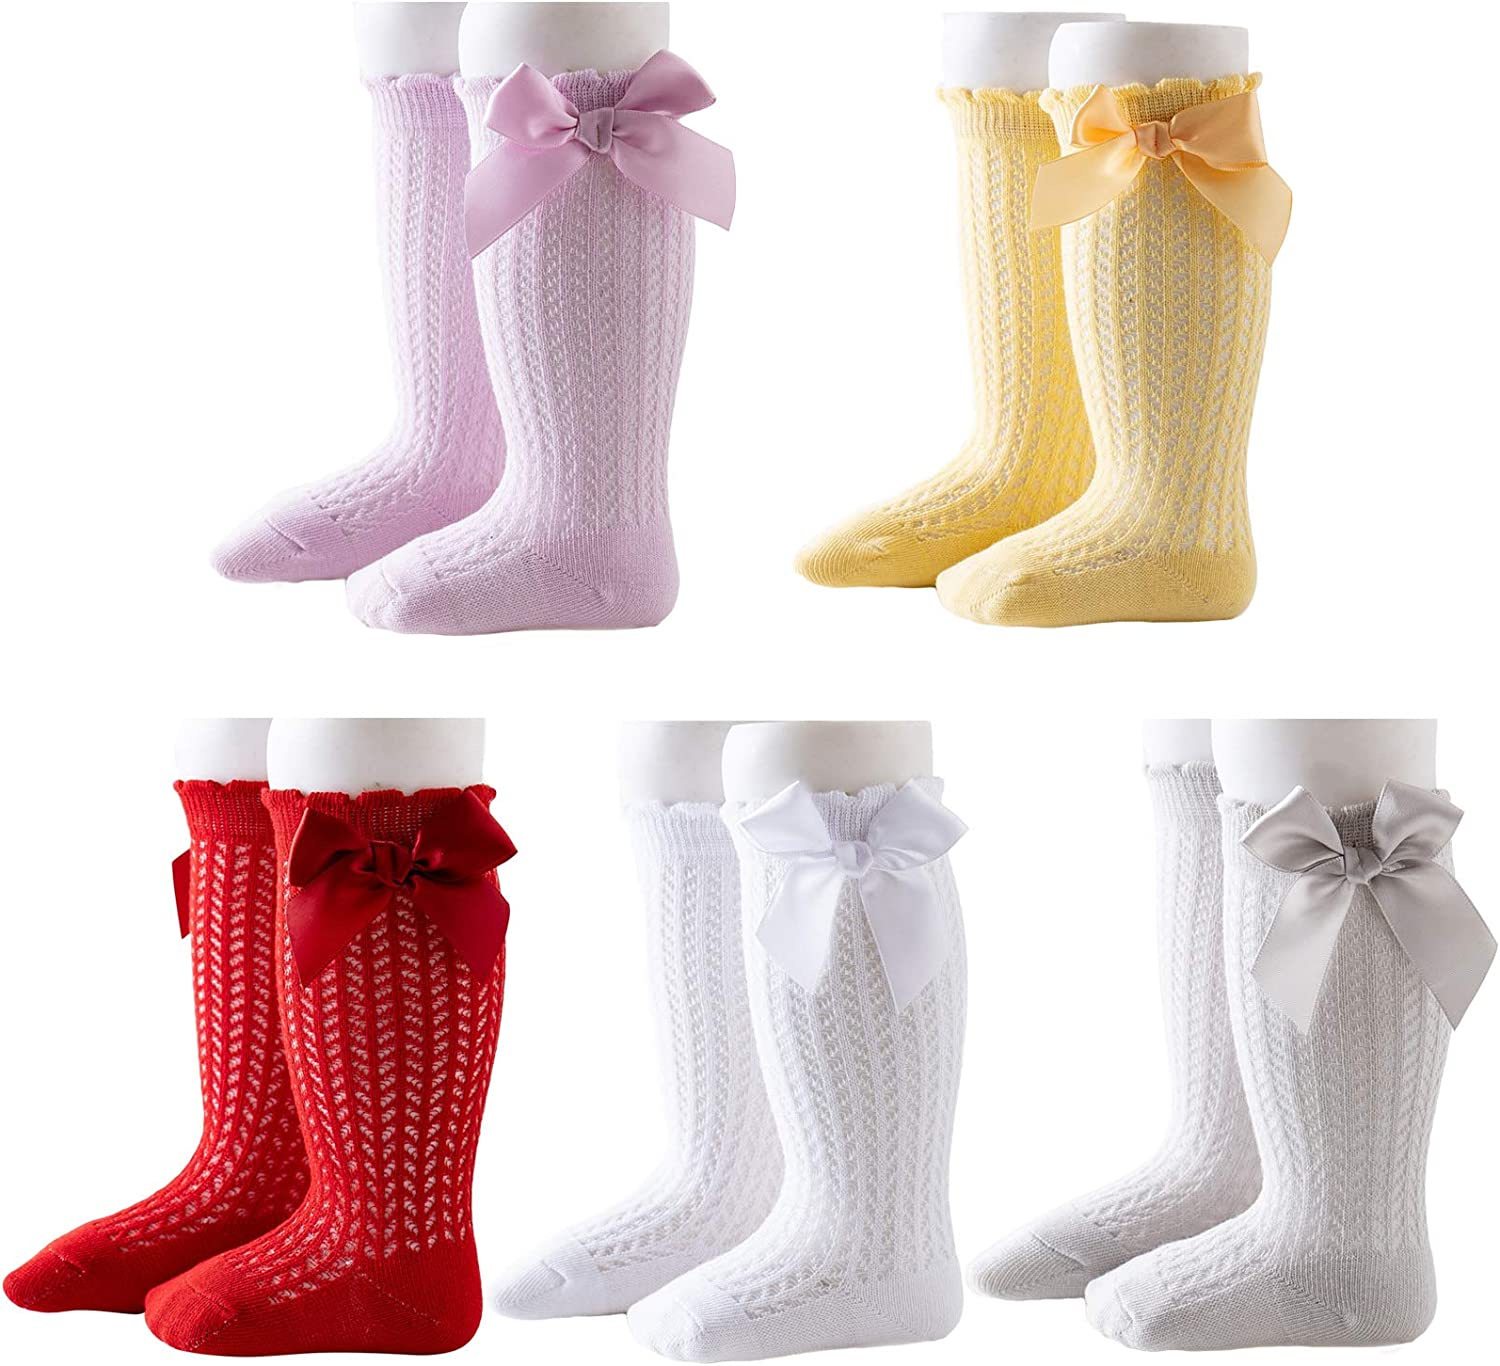 5 Pairs Baby Girls Knee High Socks Cotton Hollow Out Anti-skid Knitting Stockings Suitable for 0-3 Years Infants Toddlers